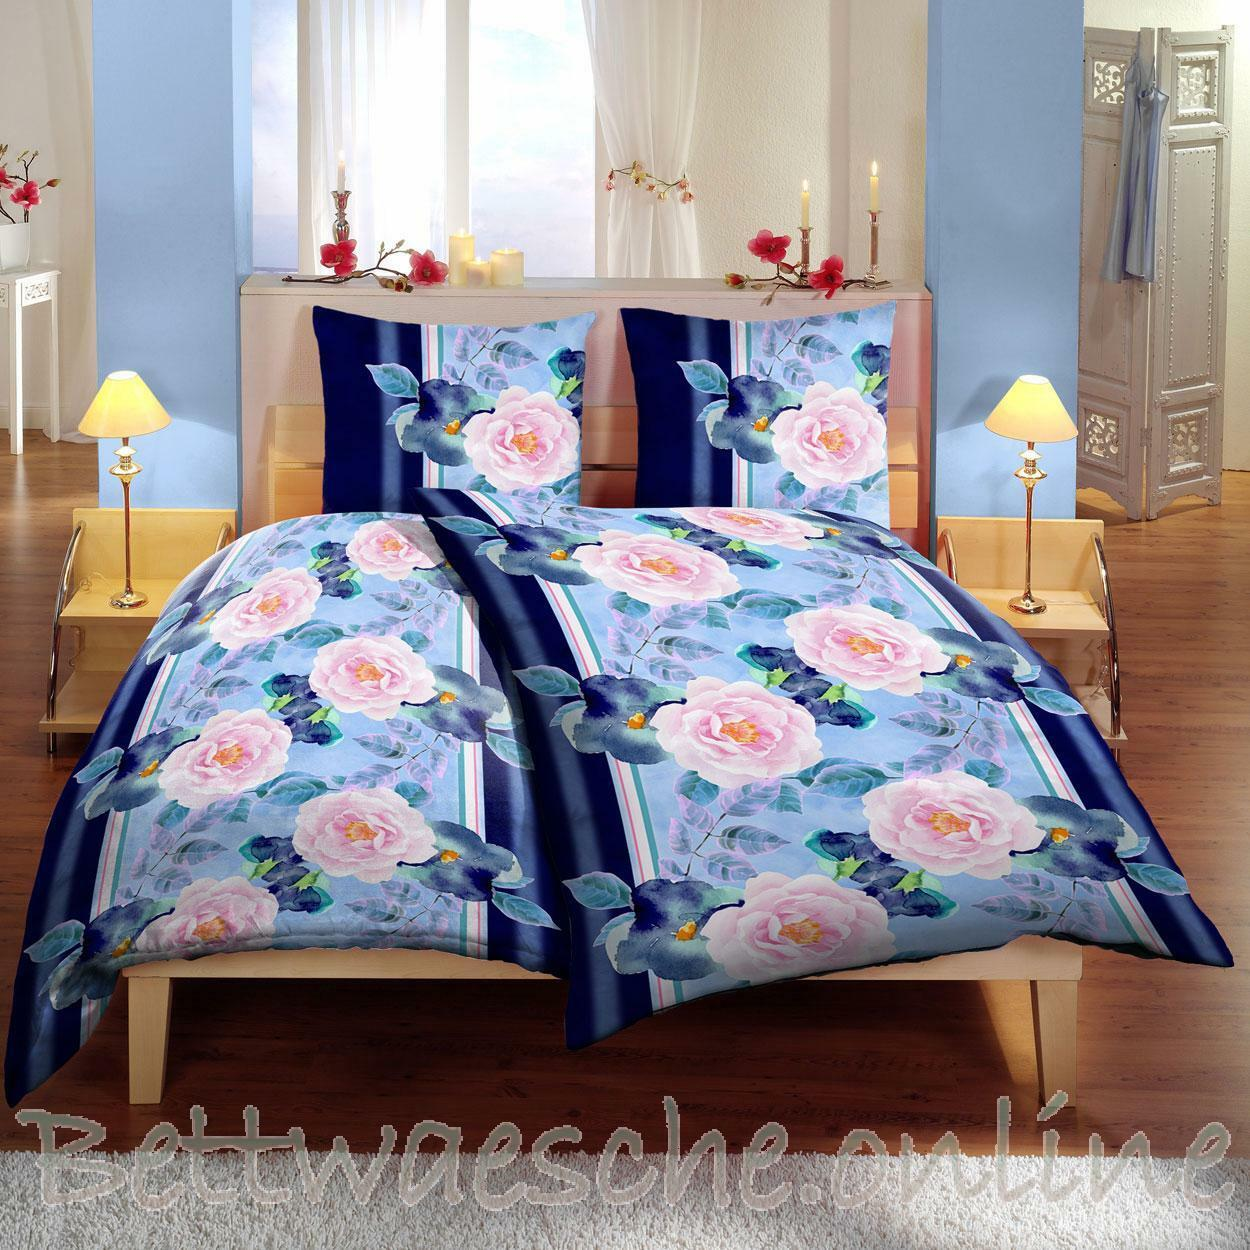 mikrofaser bettw sche 135x200 cm 4 teilig blumen floral. Black Bedroom Furniture Sets. Home Design Ideas